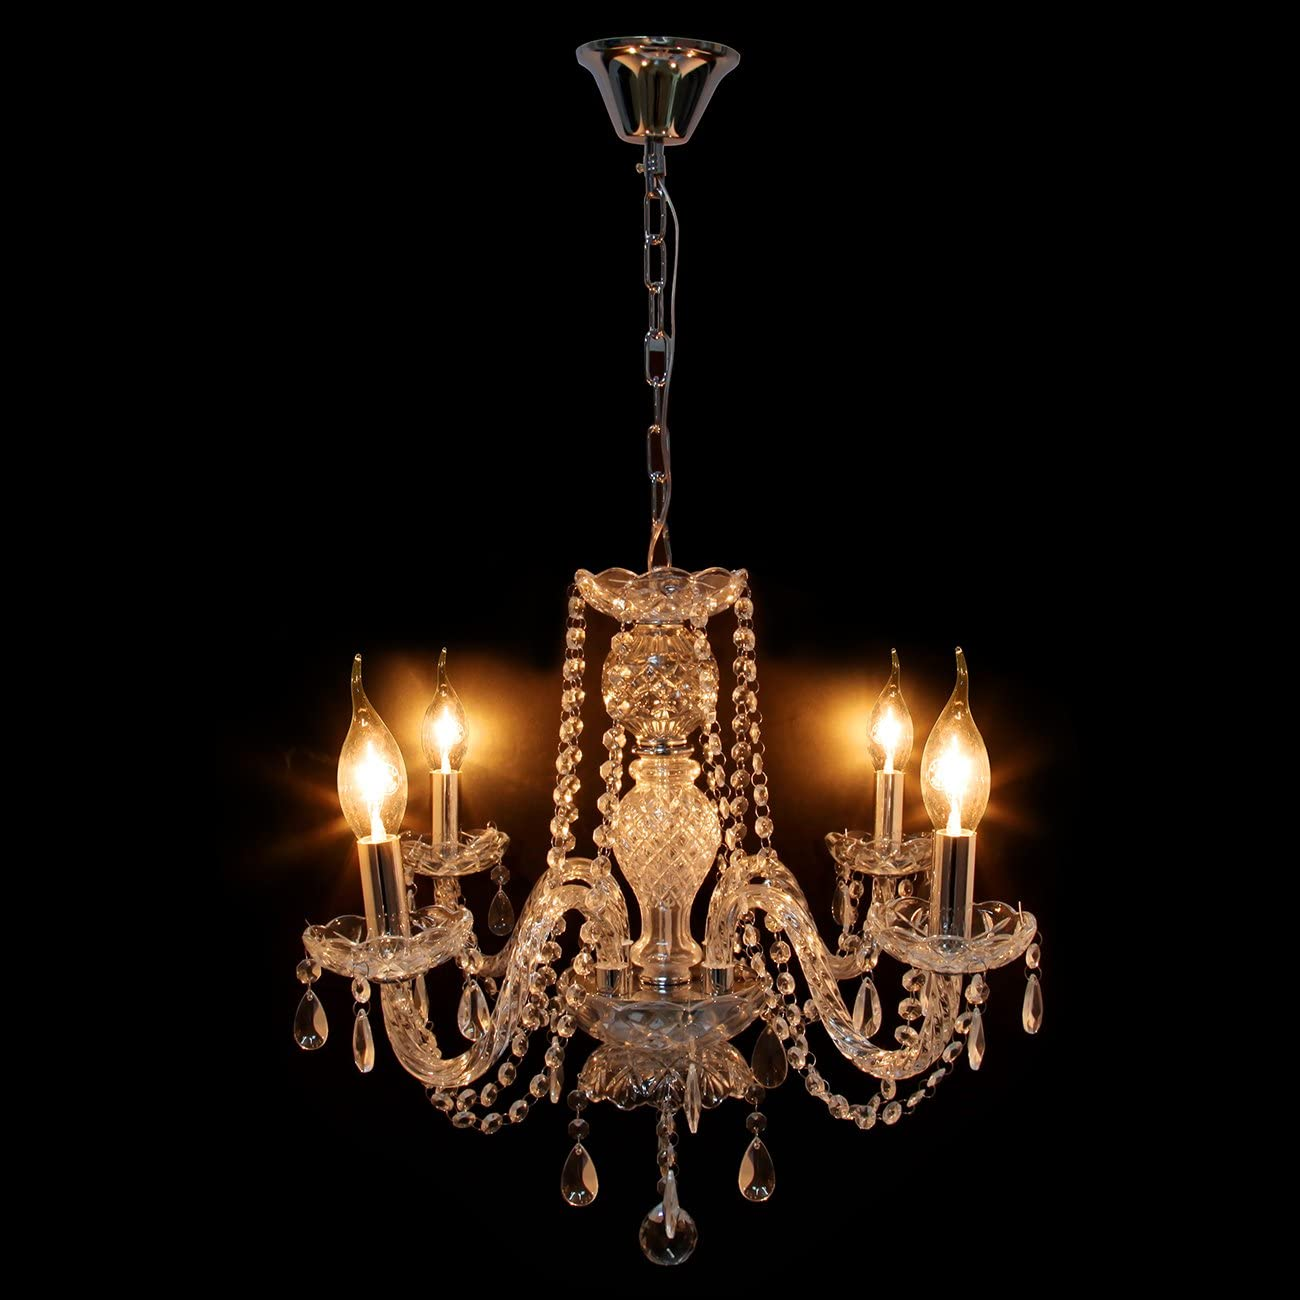 TryE Luxurious 4 Arm Chandelier K5 Crystal Glass Ceiling Light E12 Pendant Lamp for Living Room Bedroom Hallway Entry